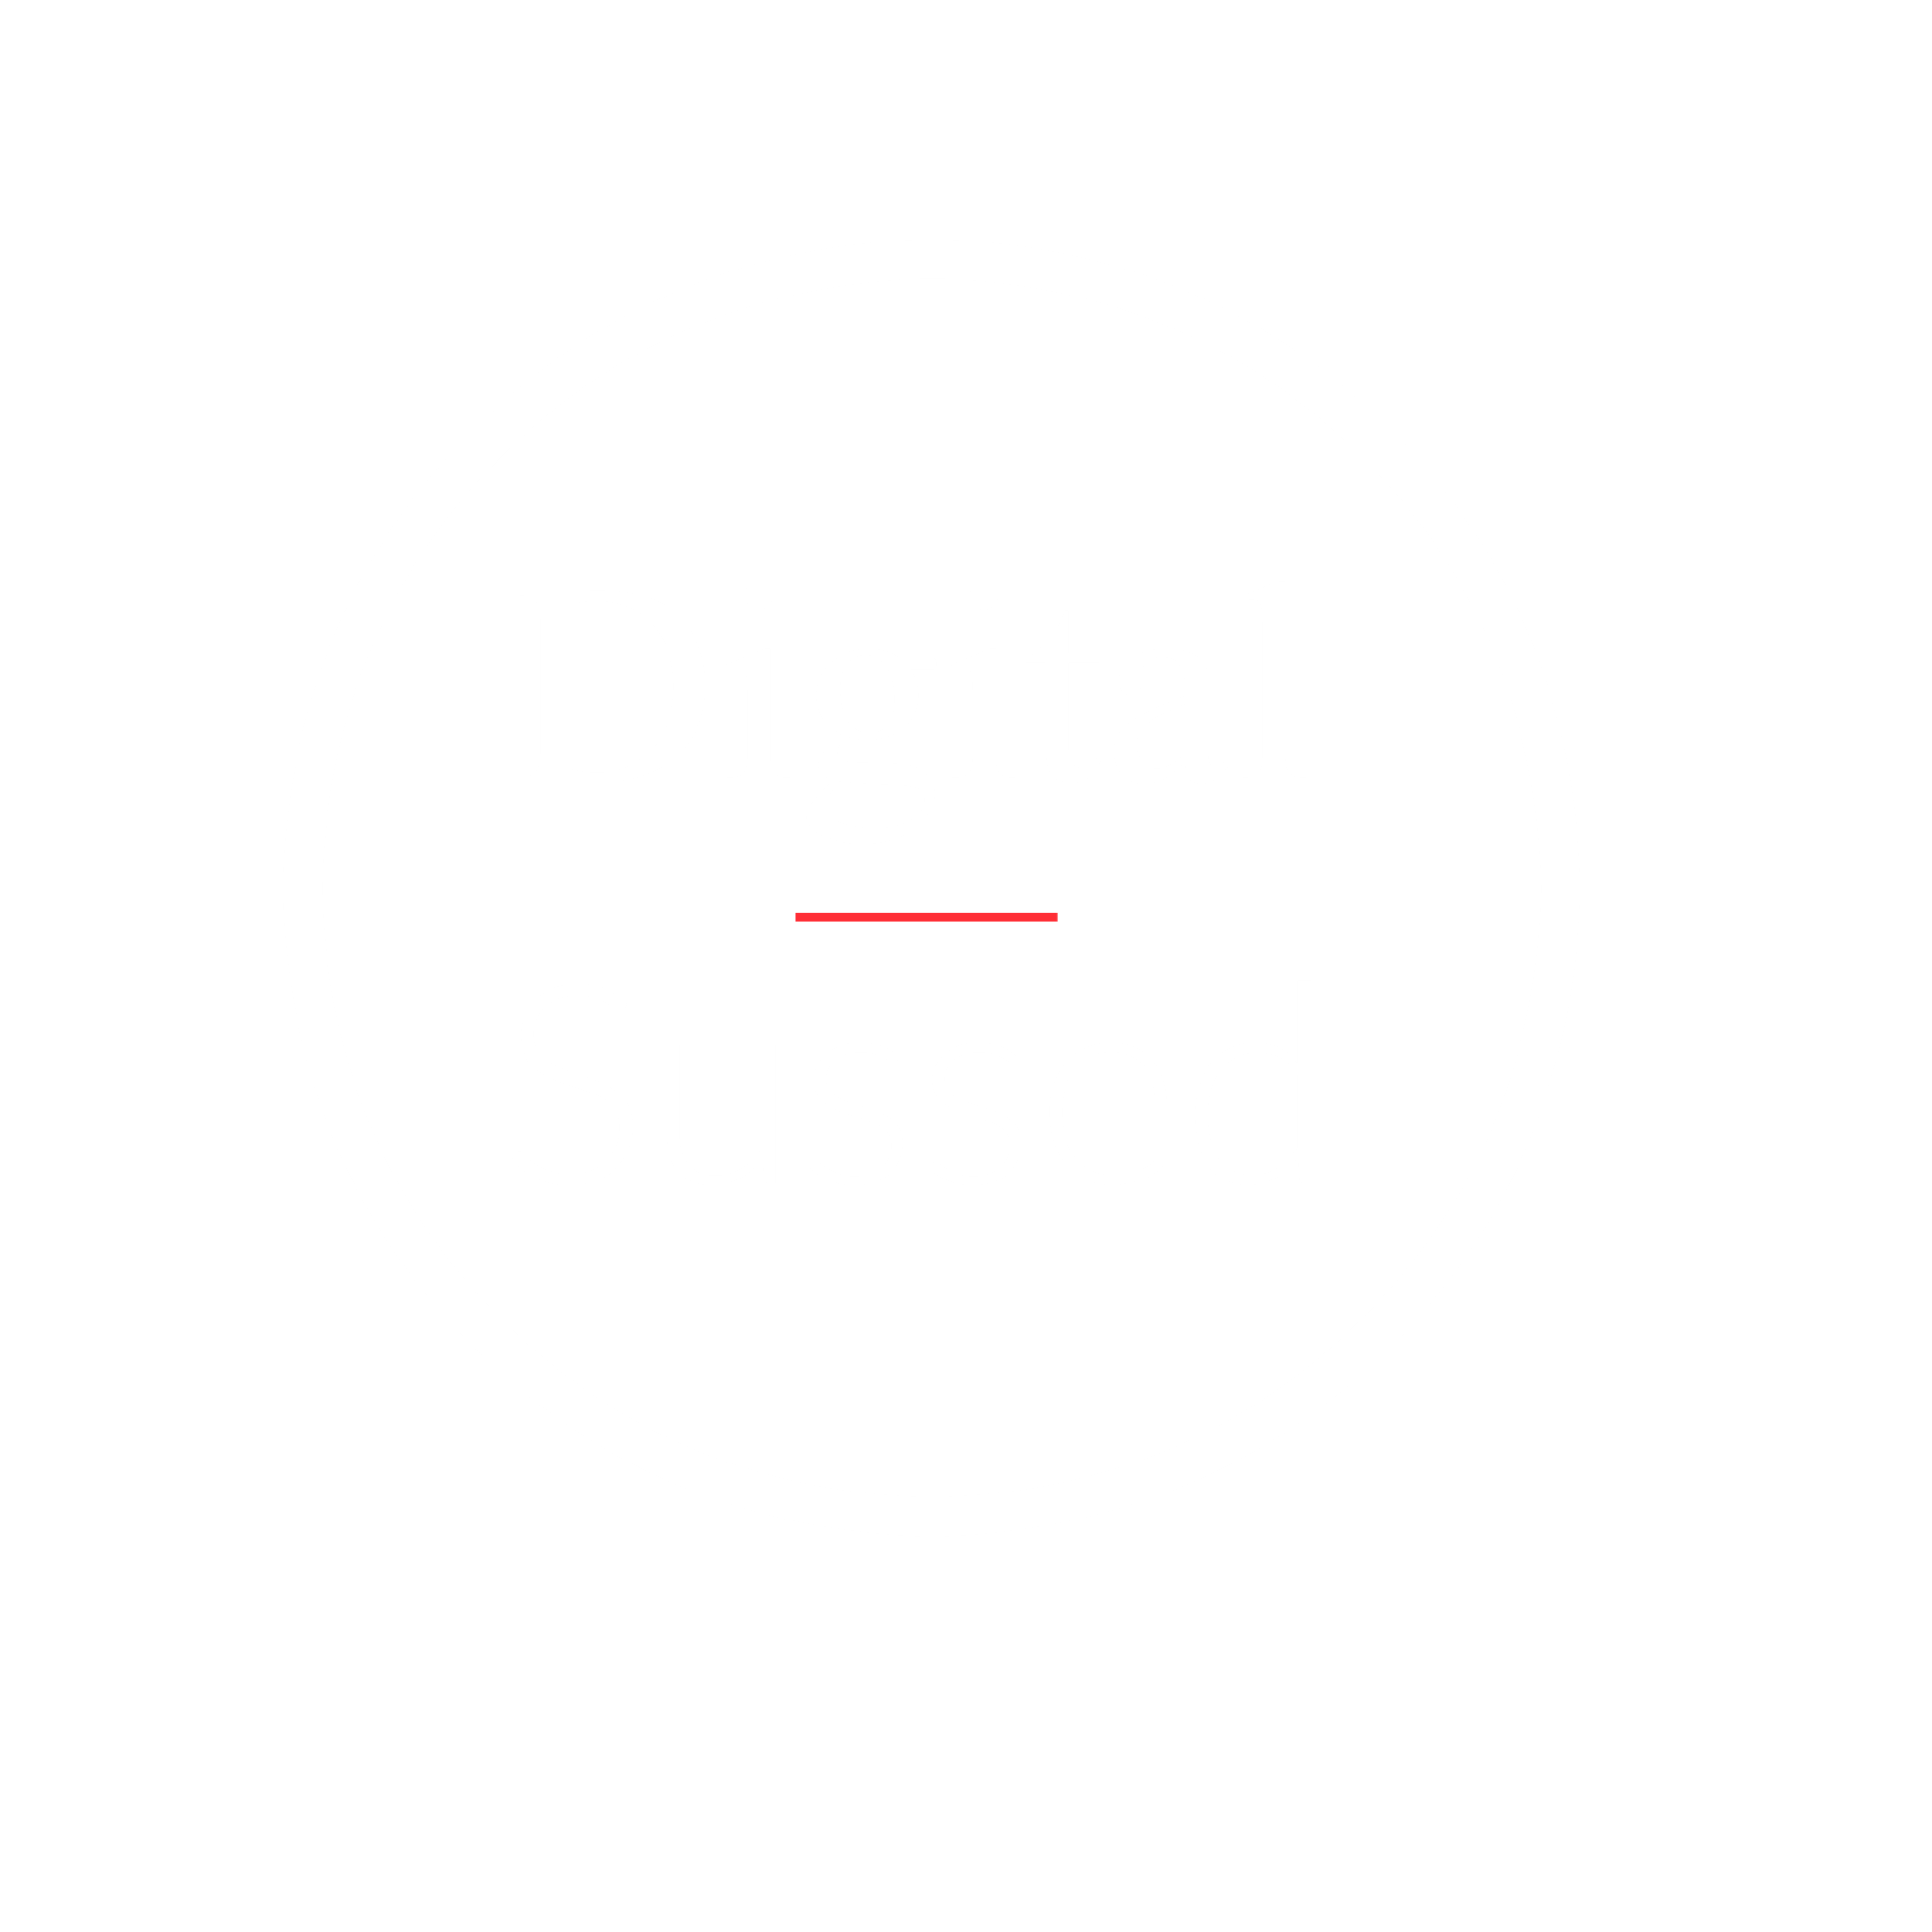 Digital Sussed